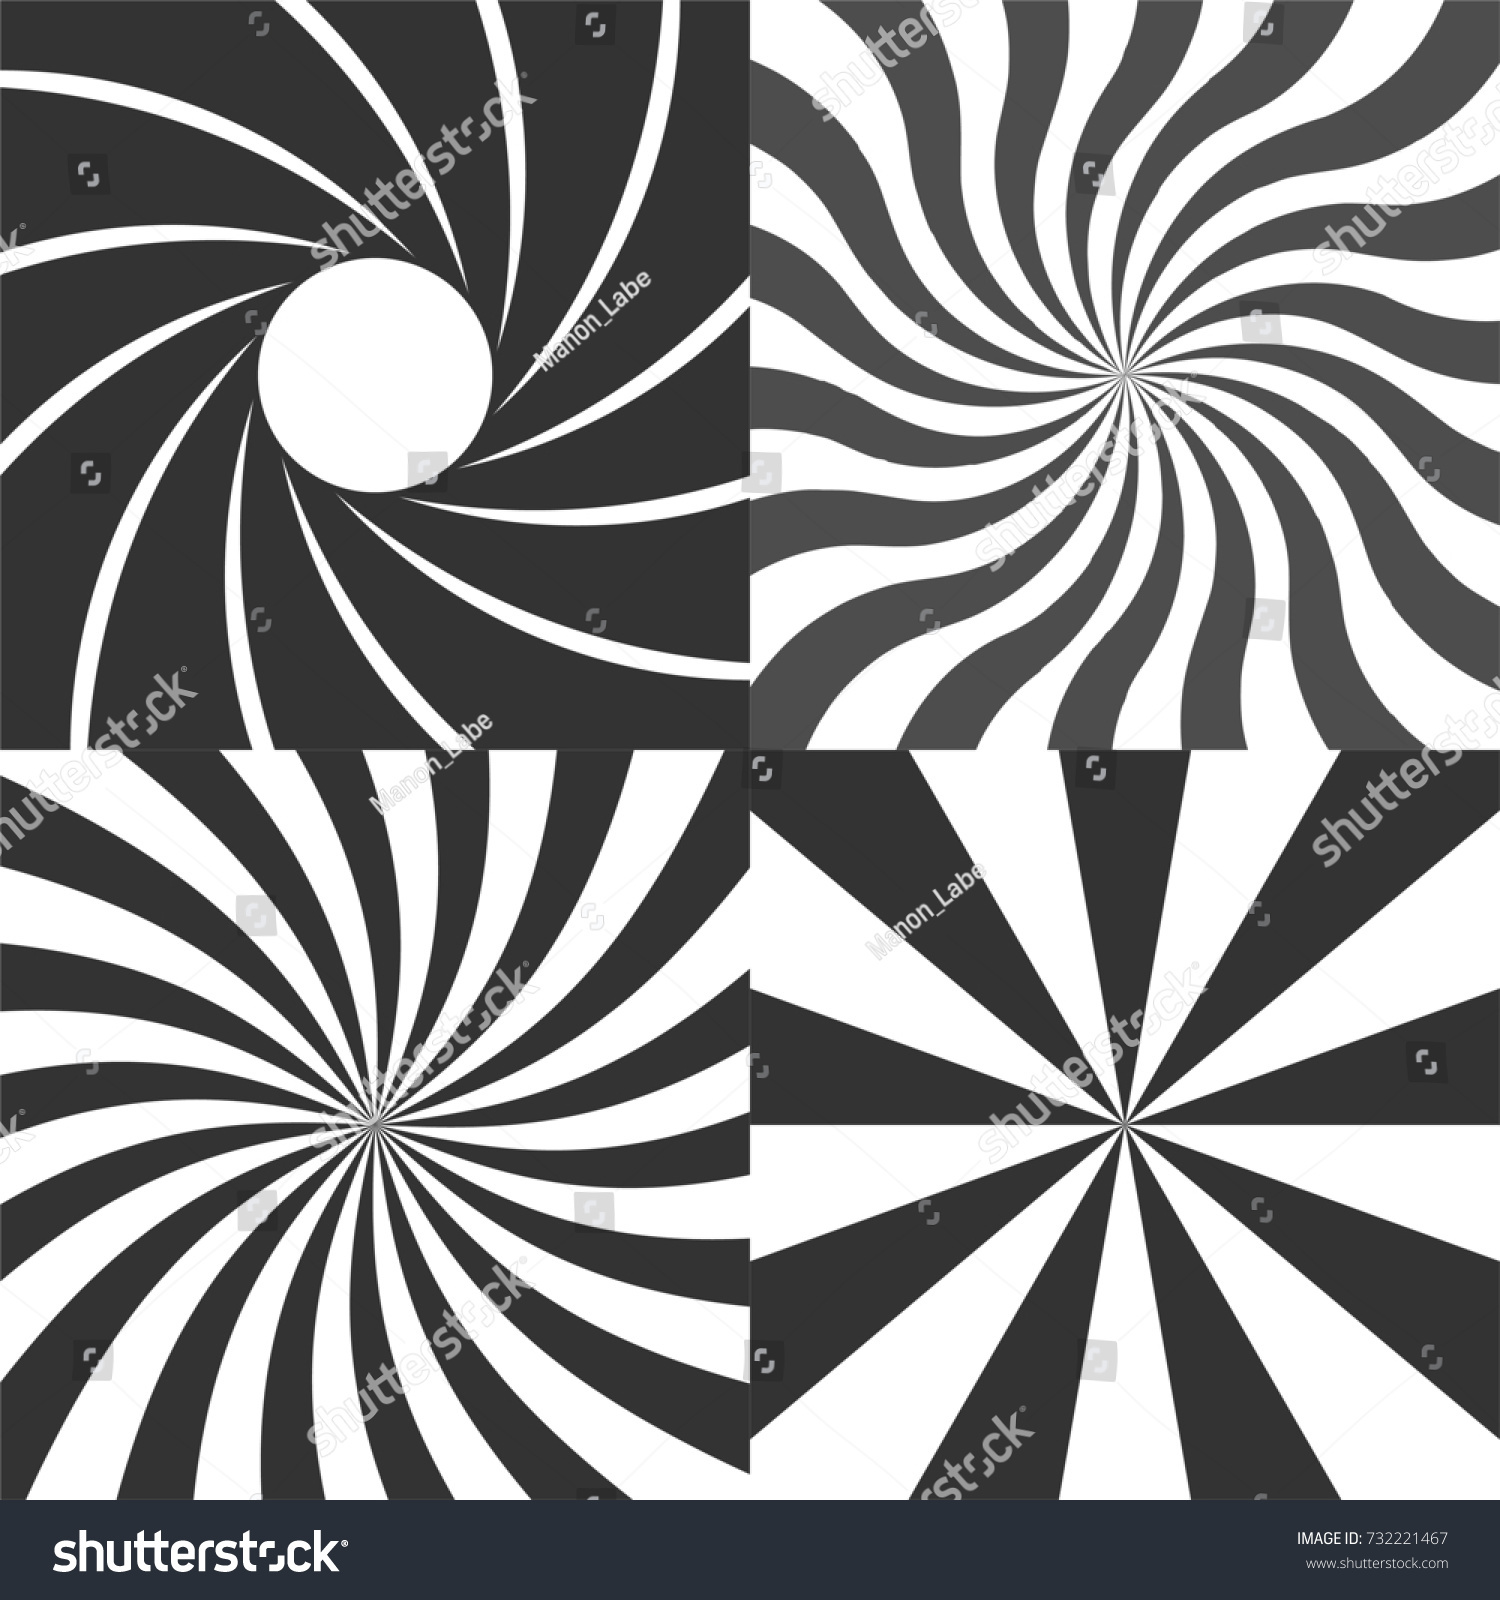 Psychedelic retro spiral black and white backgrounds vector set, radial rays vintage backdrop, radial lens aperture, wavy spinning stripes variants.